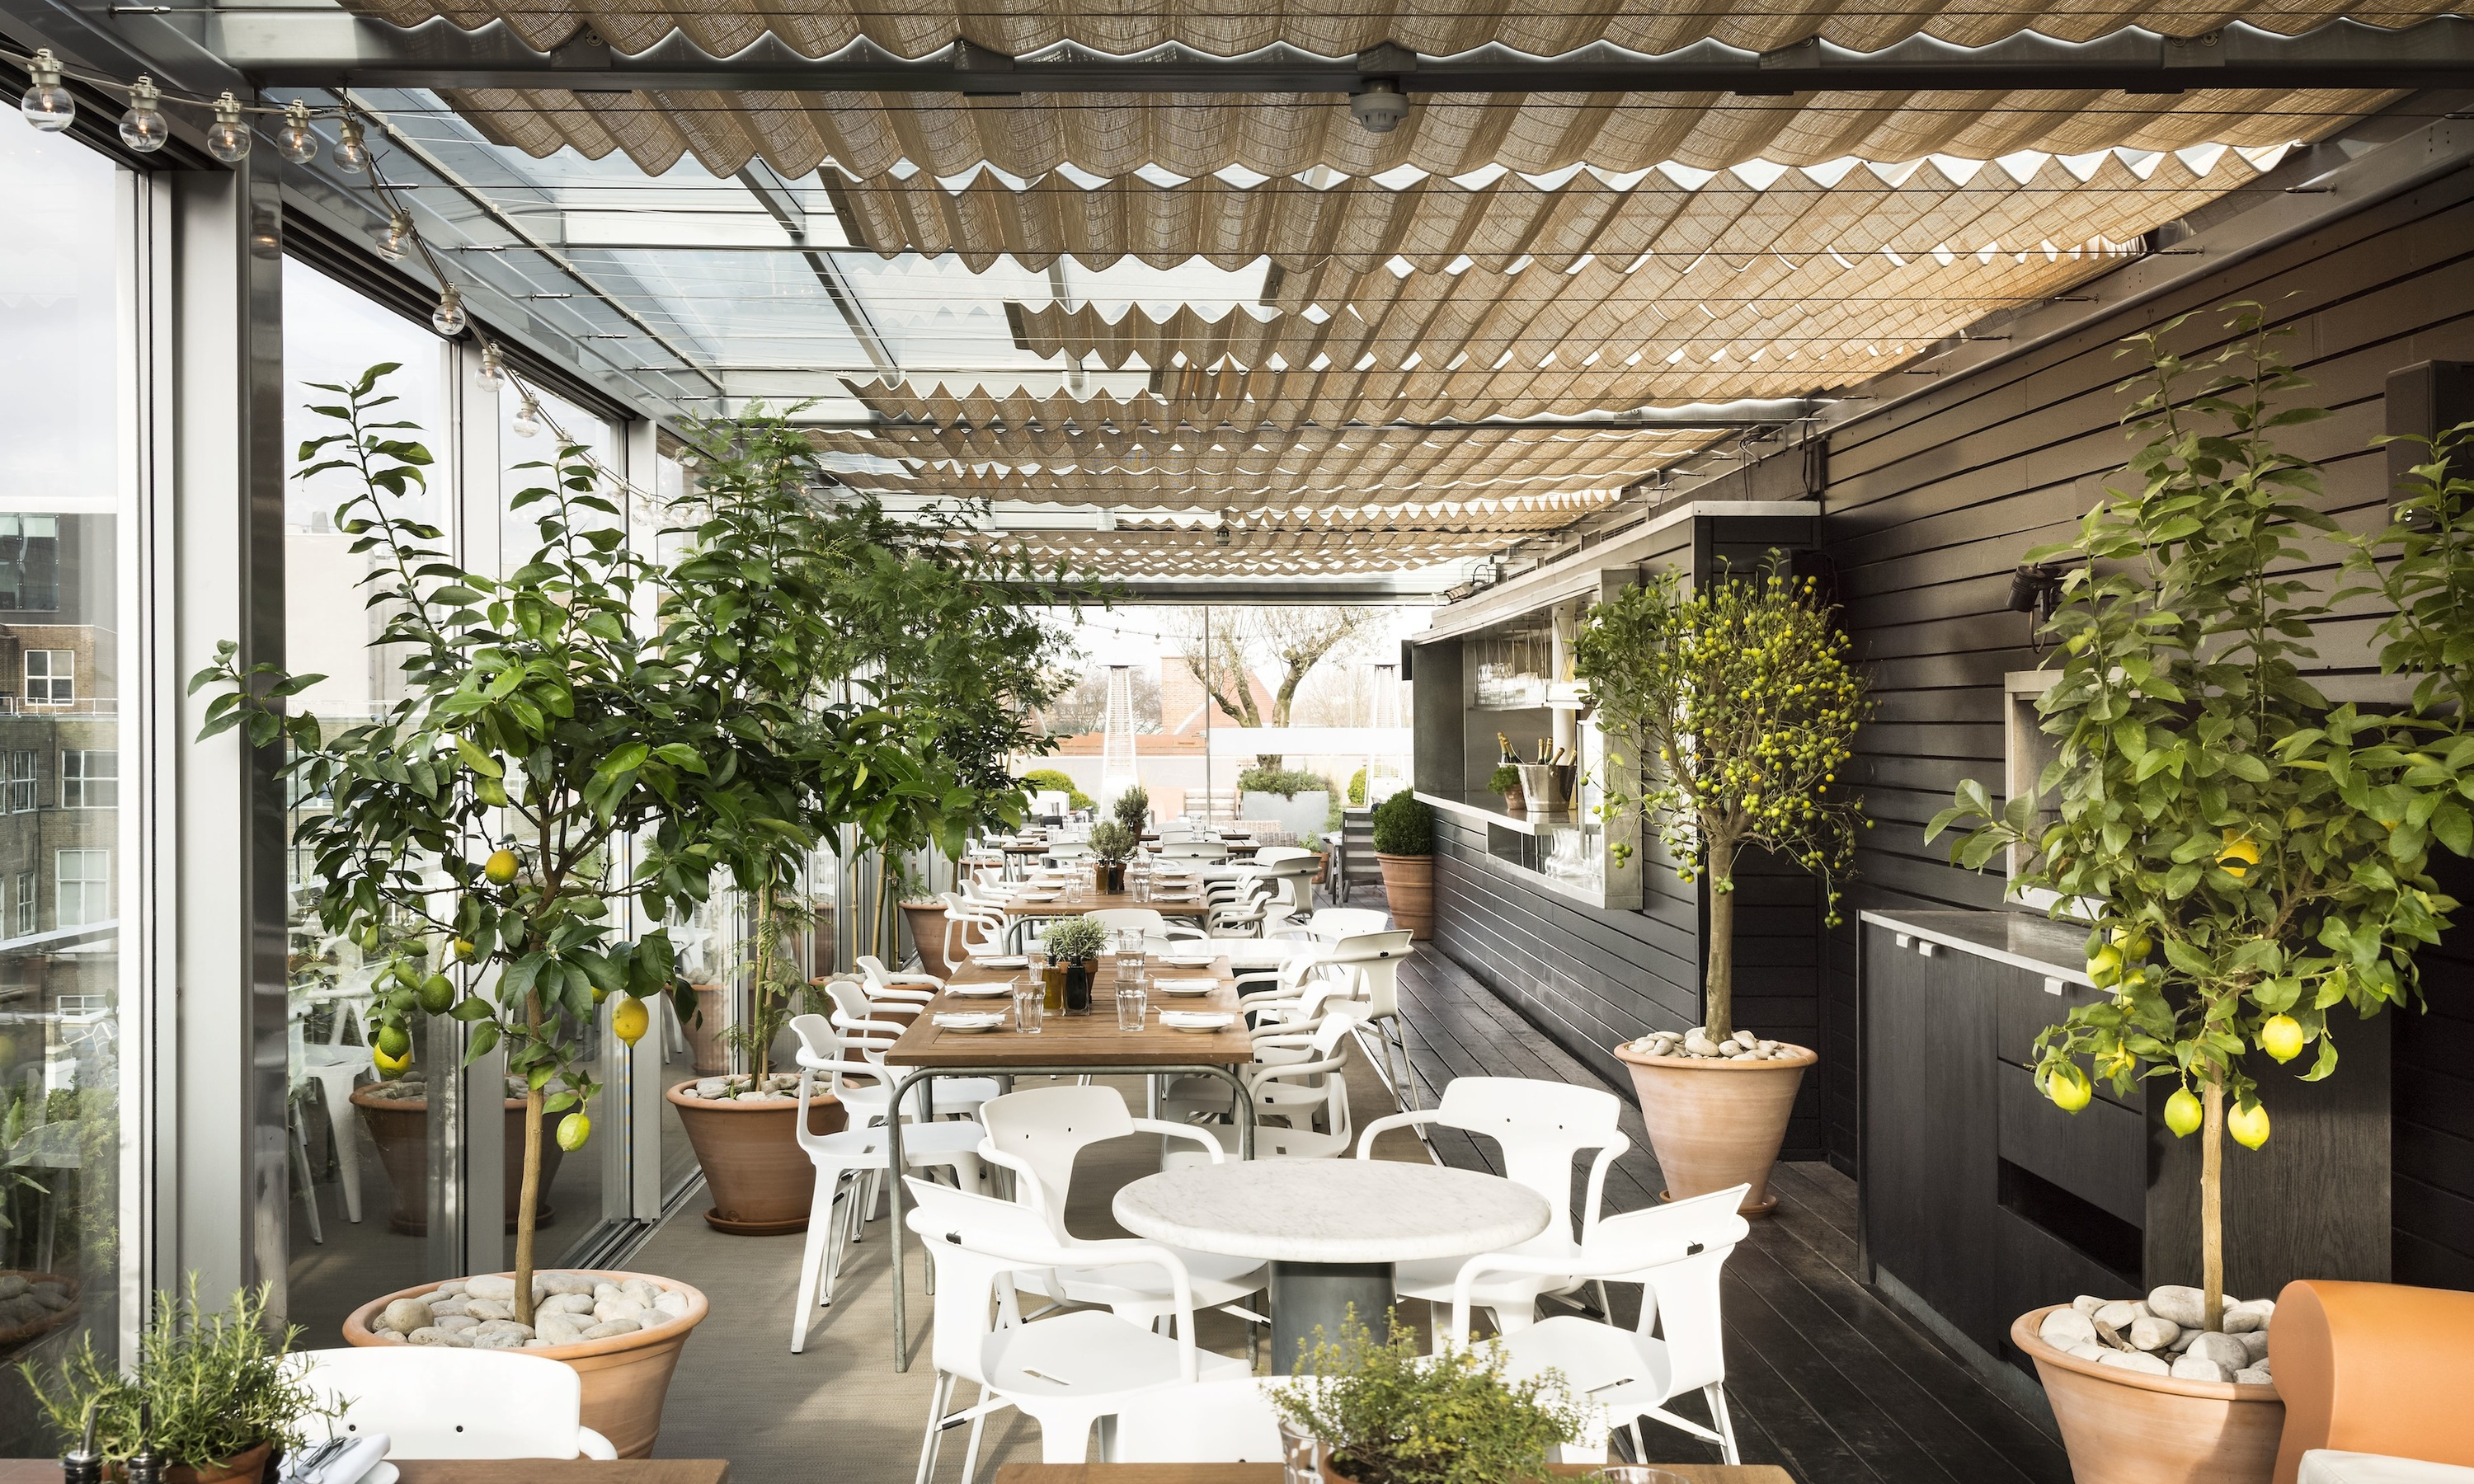 Of the best rooftop restaurants in london